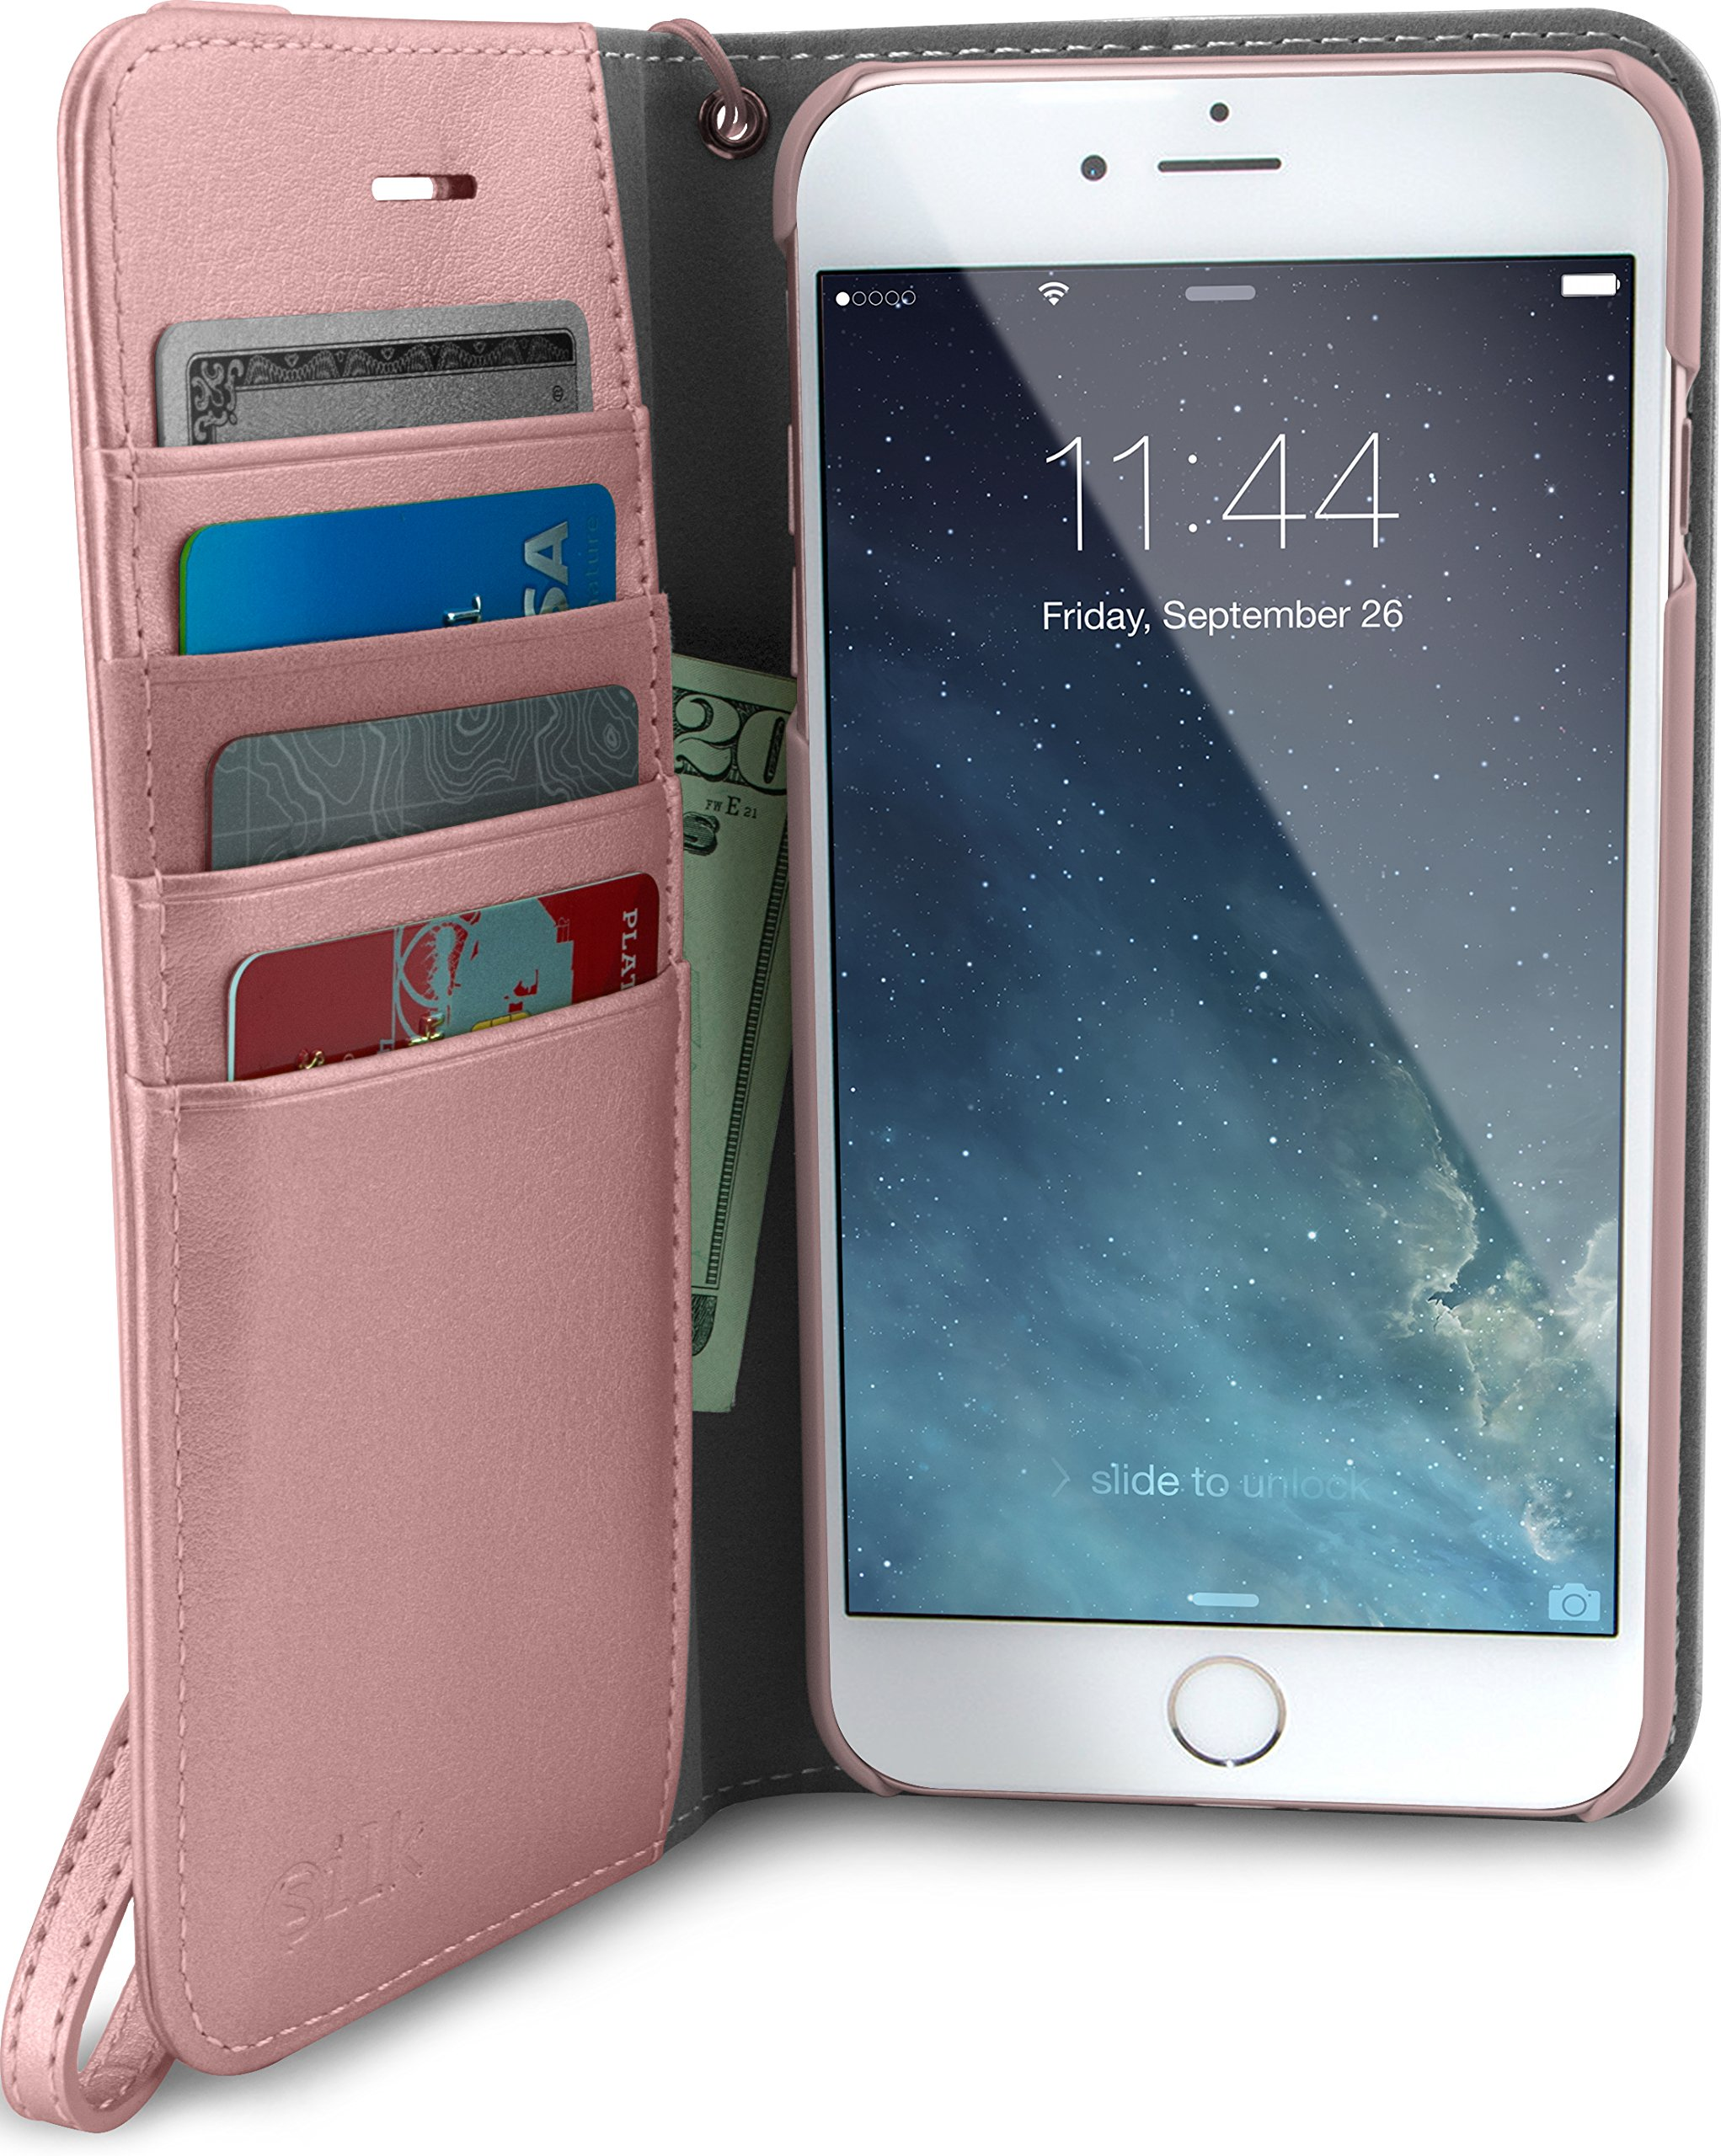 Silk iPhone 7 Plus/8 Plus Wallet Case - FOLIO WALLET Synthetic Leather Portfolio Flip Card Cover with Kickstand -Keeper of the Things - Rose Gold